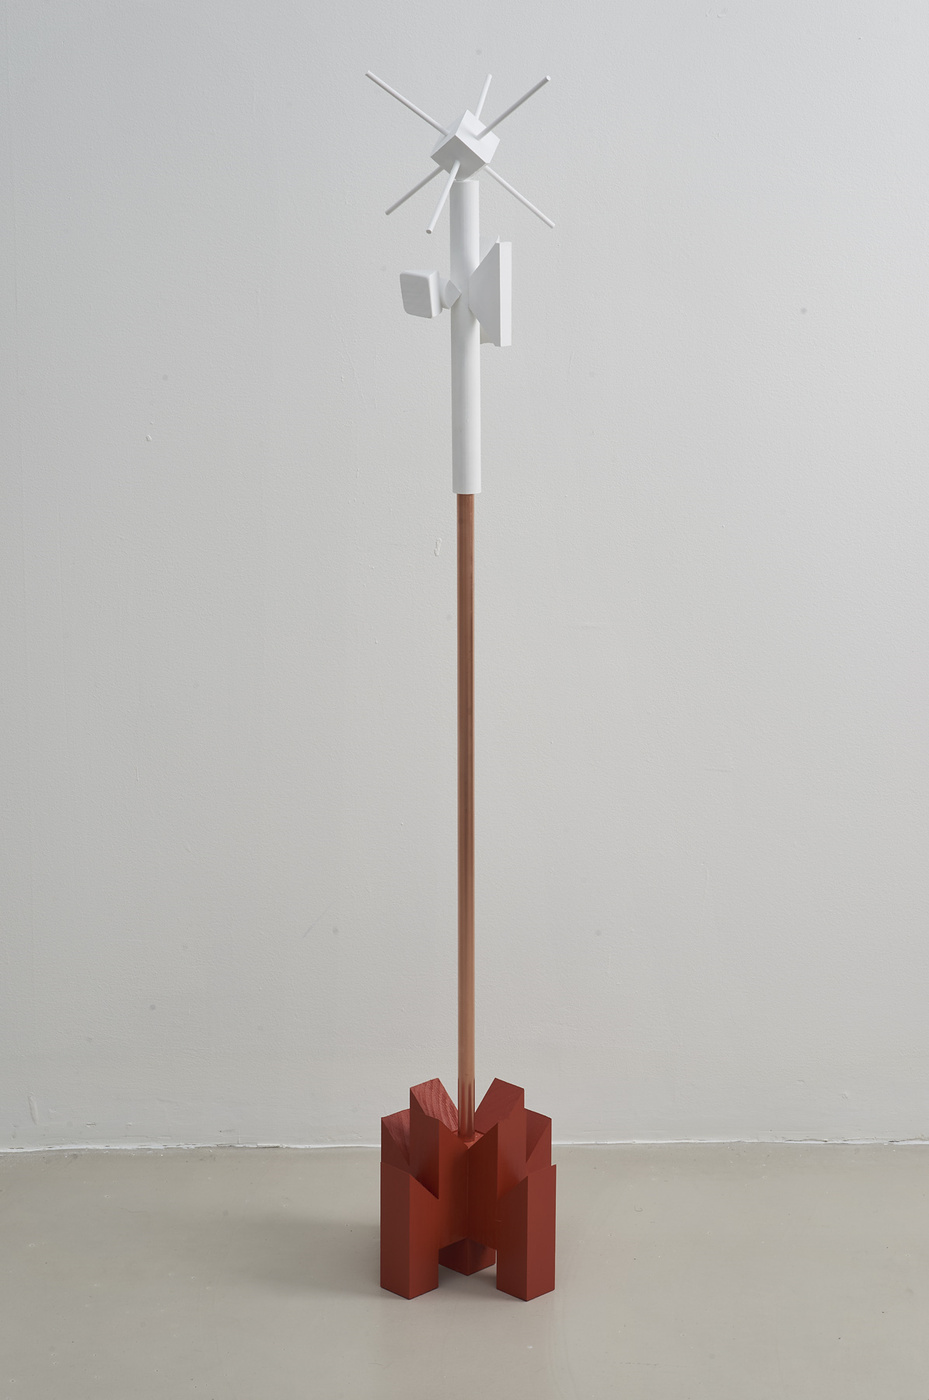 Sutter-Shudo_Pole for the Crib of the Infant Jesus, 2016_43 x 7.5x7.5 inches_NSS00002ST_PRS (1)